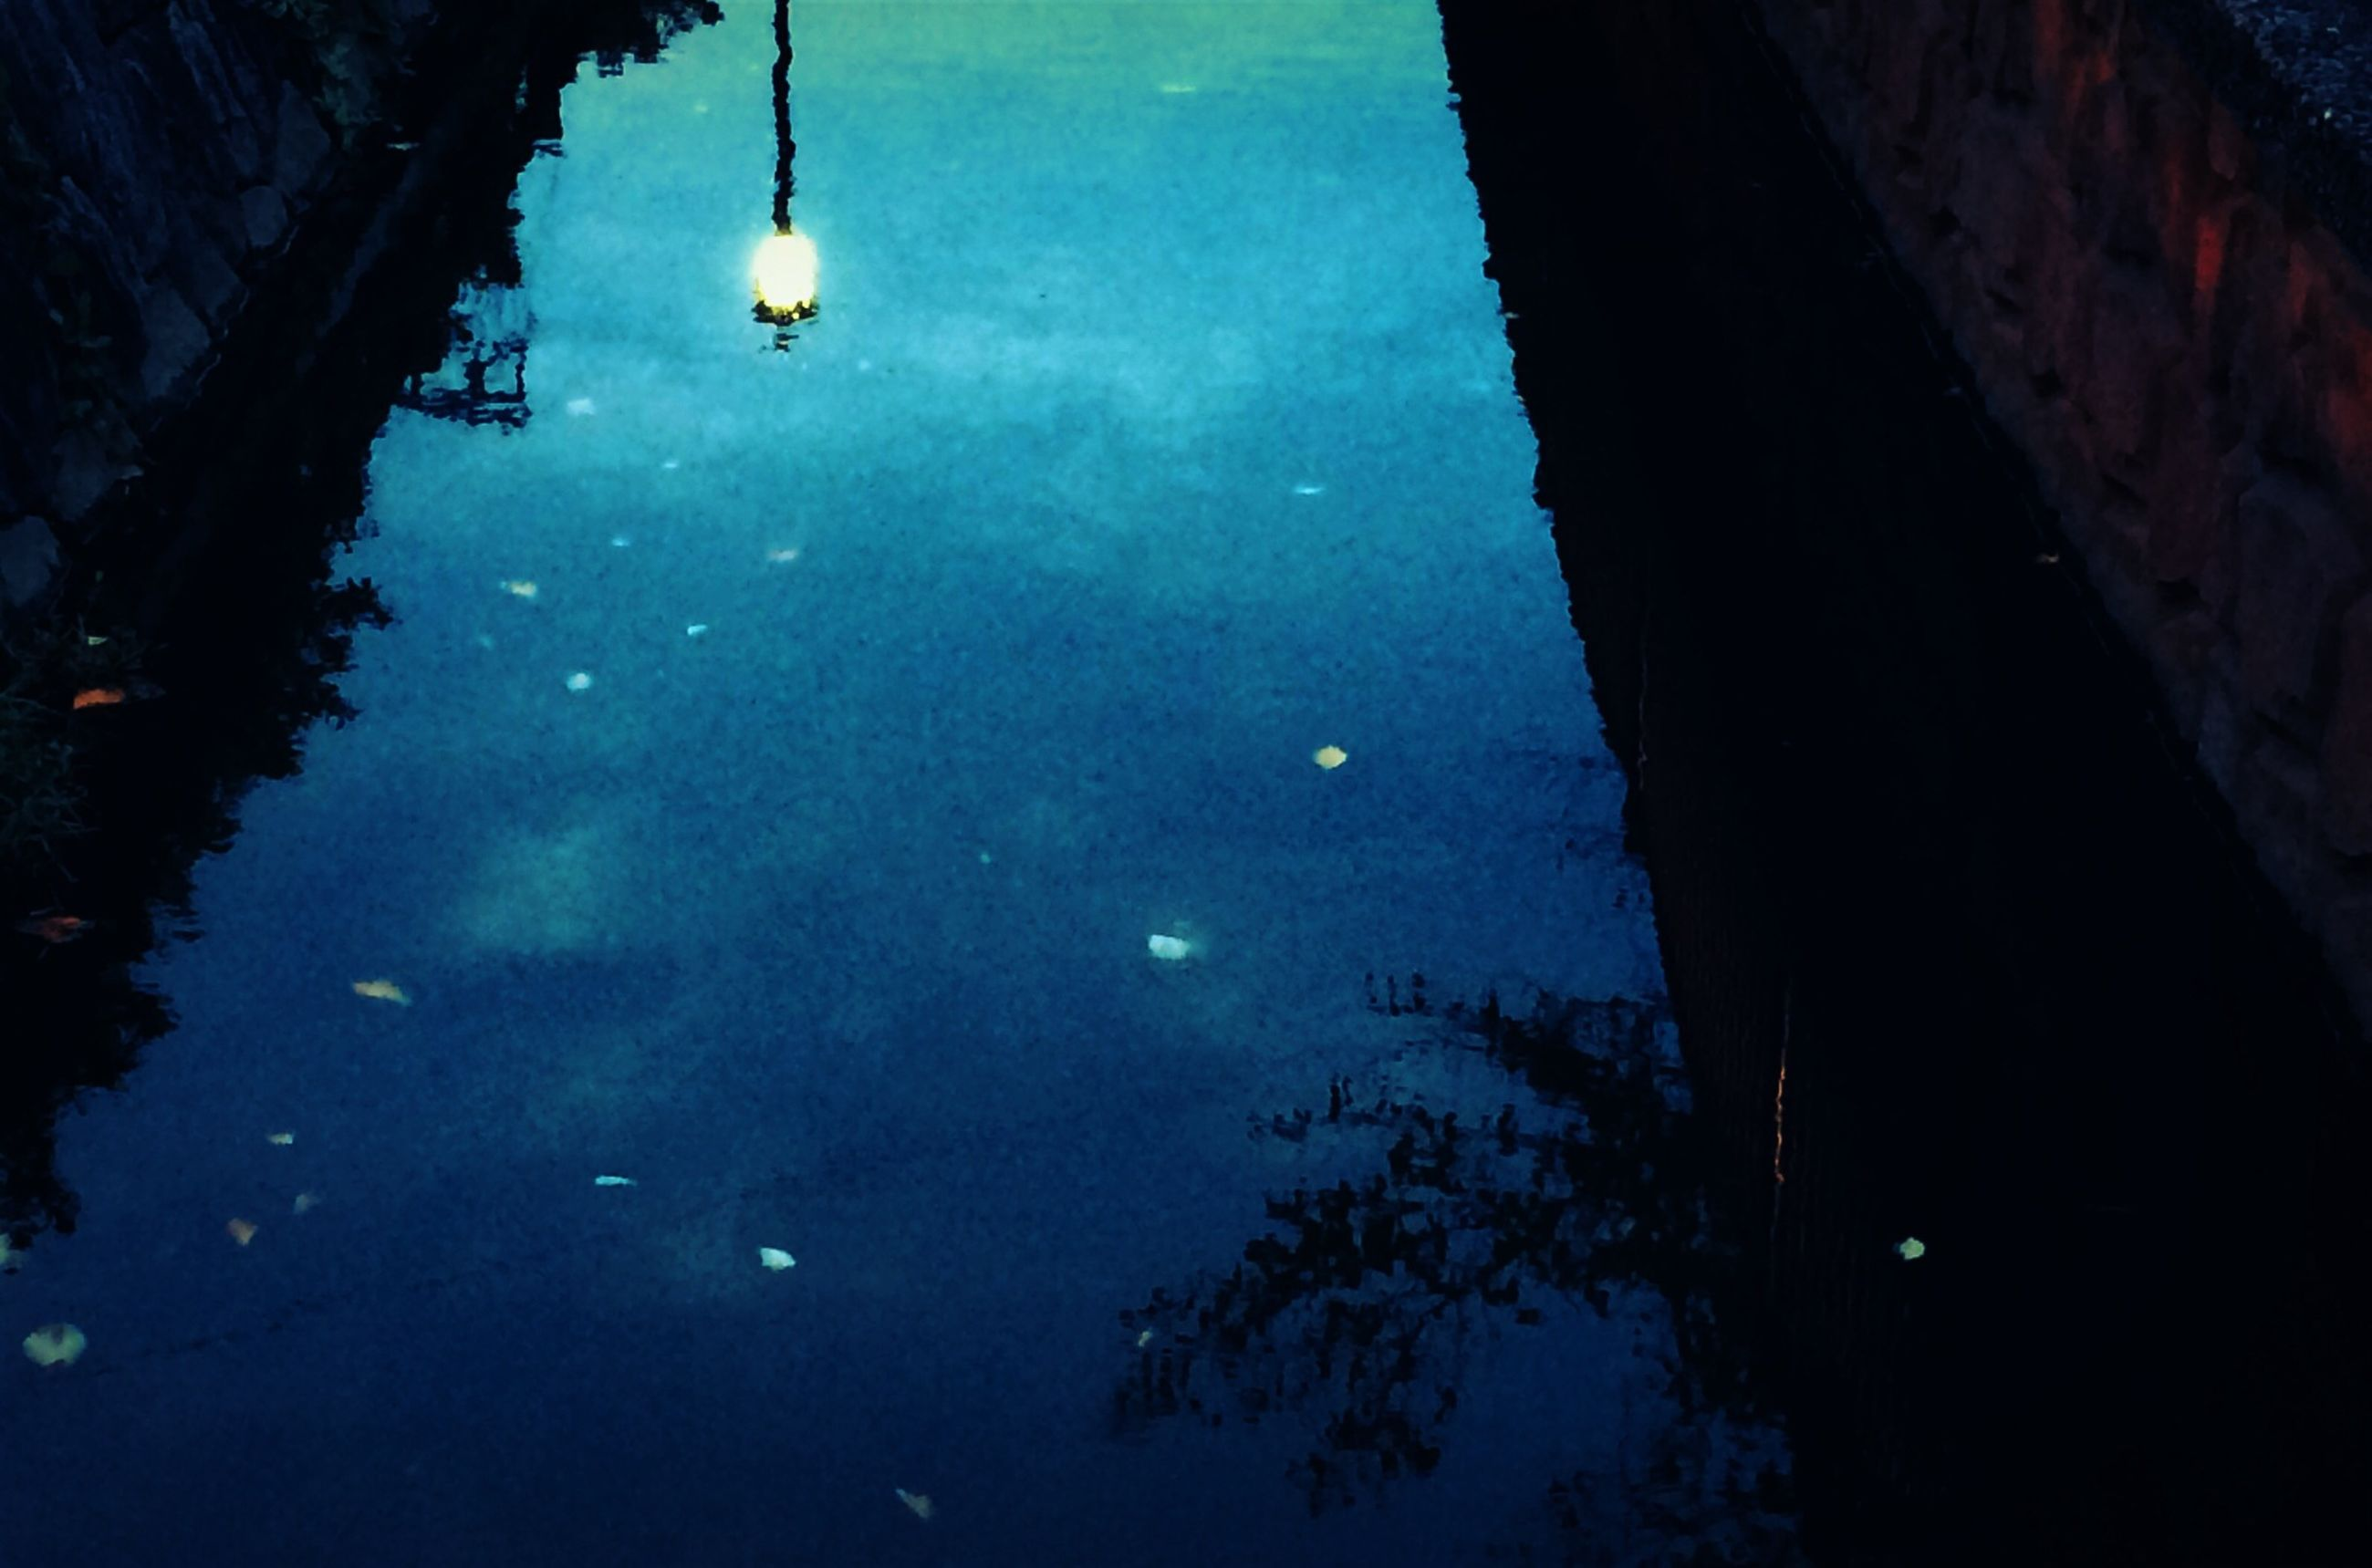 water, reflection, night, sky, built structure, building exterior, illuminated, standing water, architecture, waterfront, tranquility, nature, blue, no people, moon, dusk, low angle view, outdoors, puddle, lighting equipment